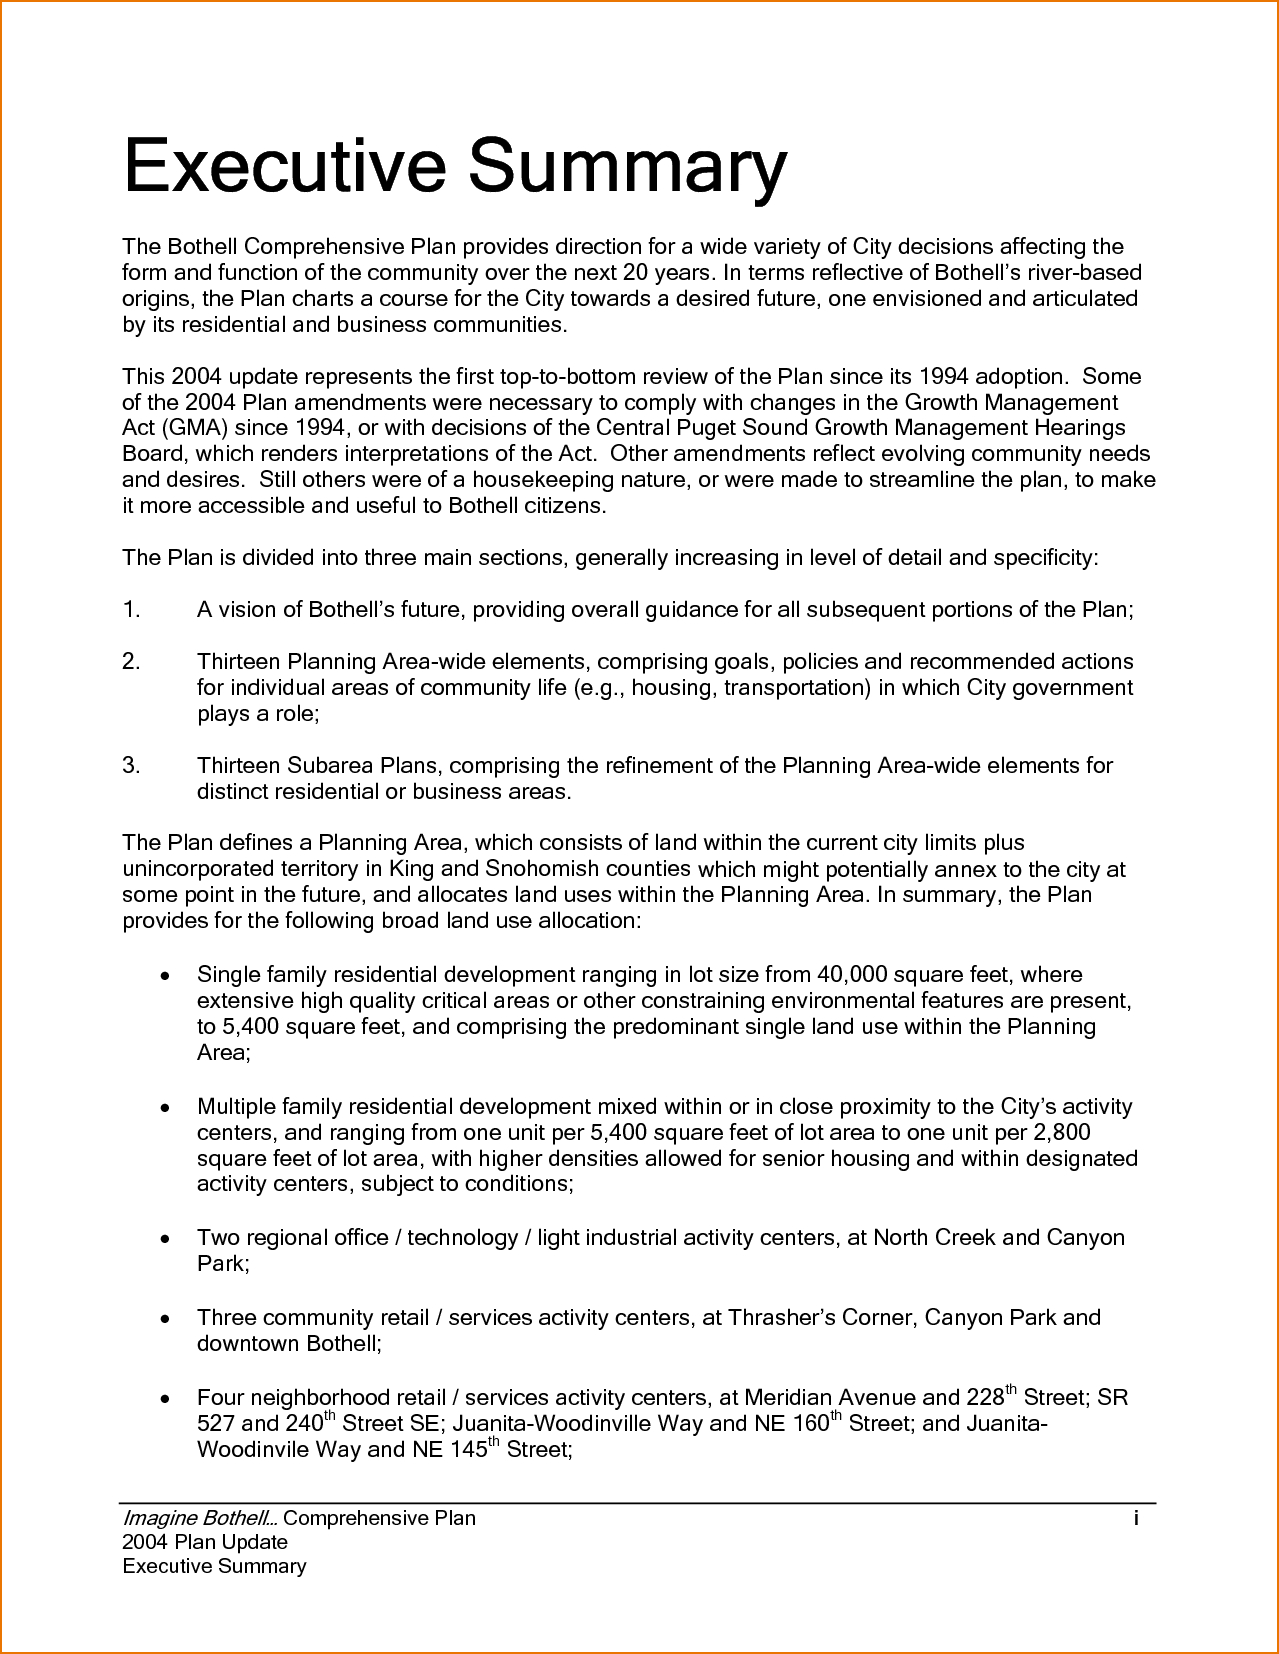 Executive Summary Example Incident Report Template Sample Regarding Executive Summary Report Template